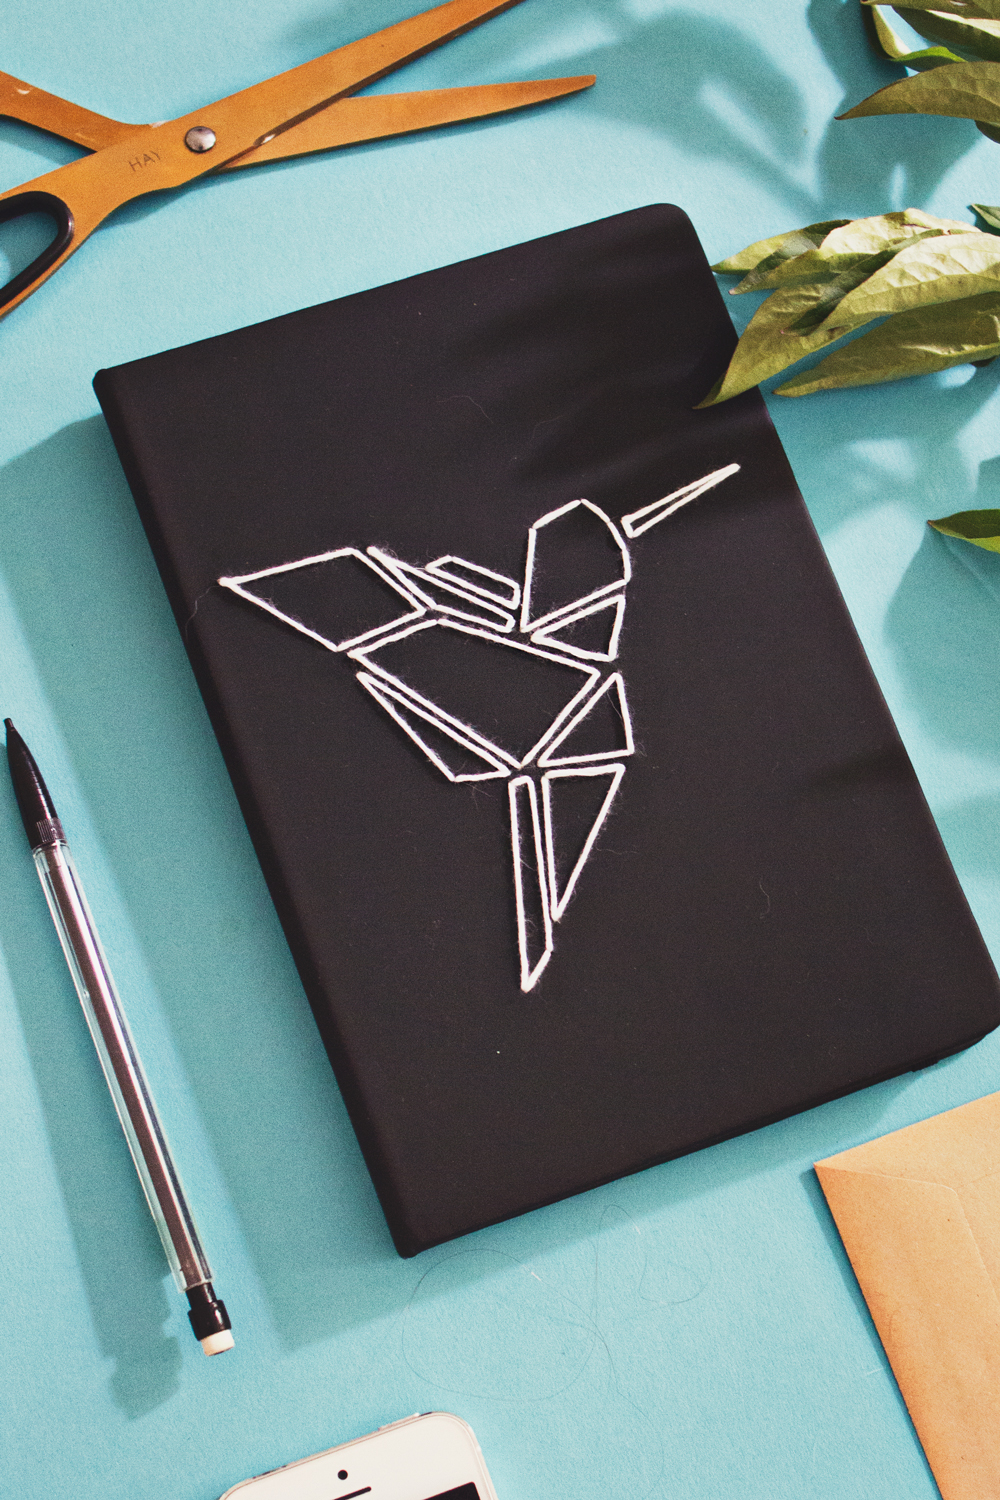 Diy White Book Cover : Diy origami embroidered book cover